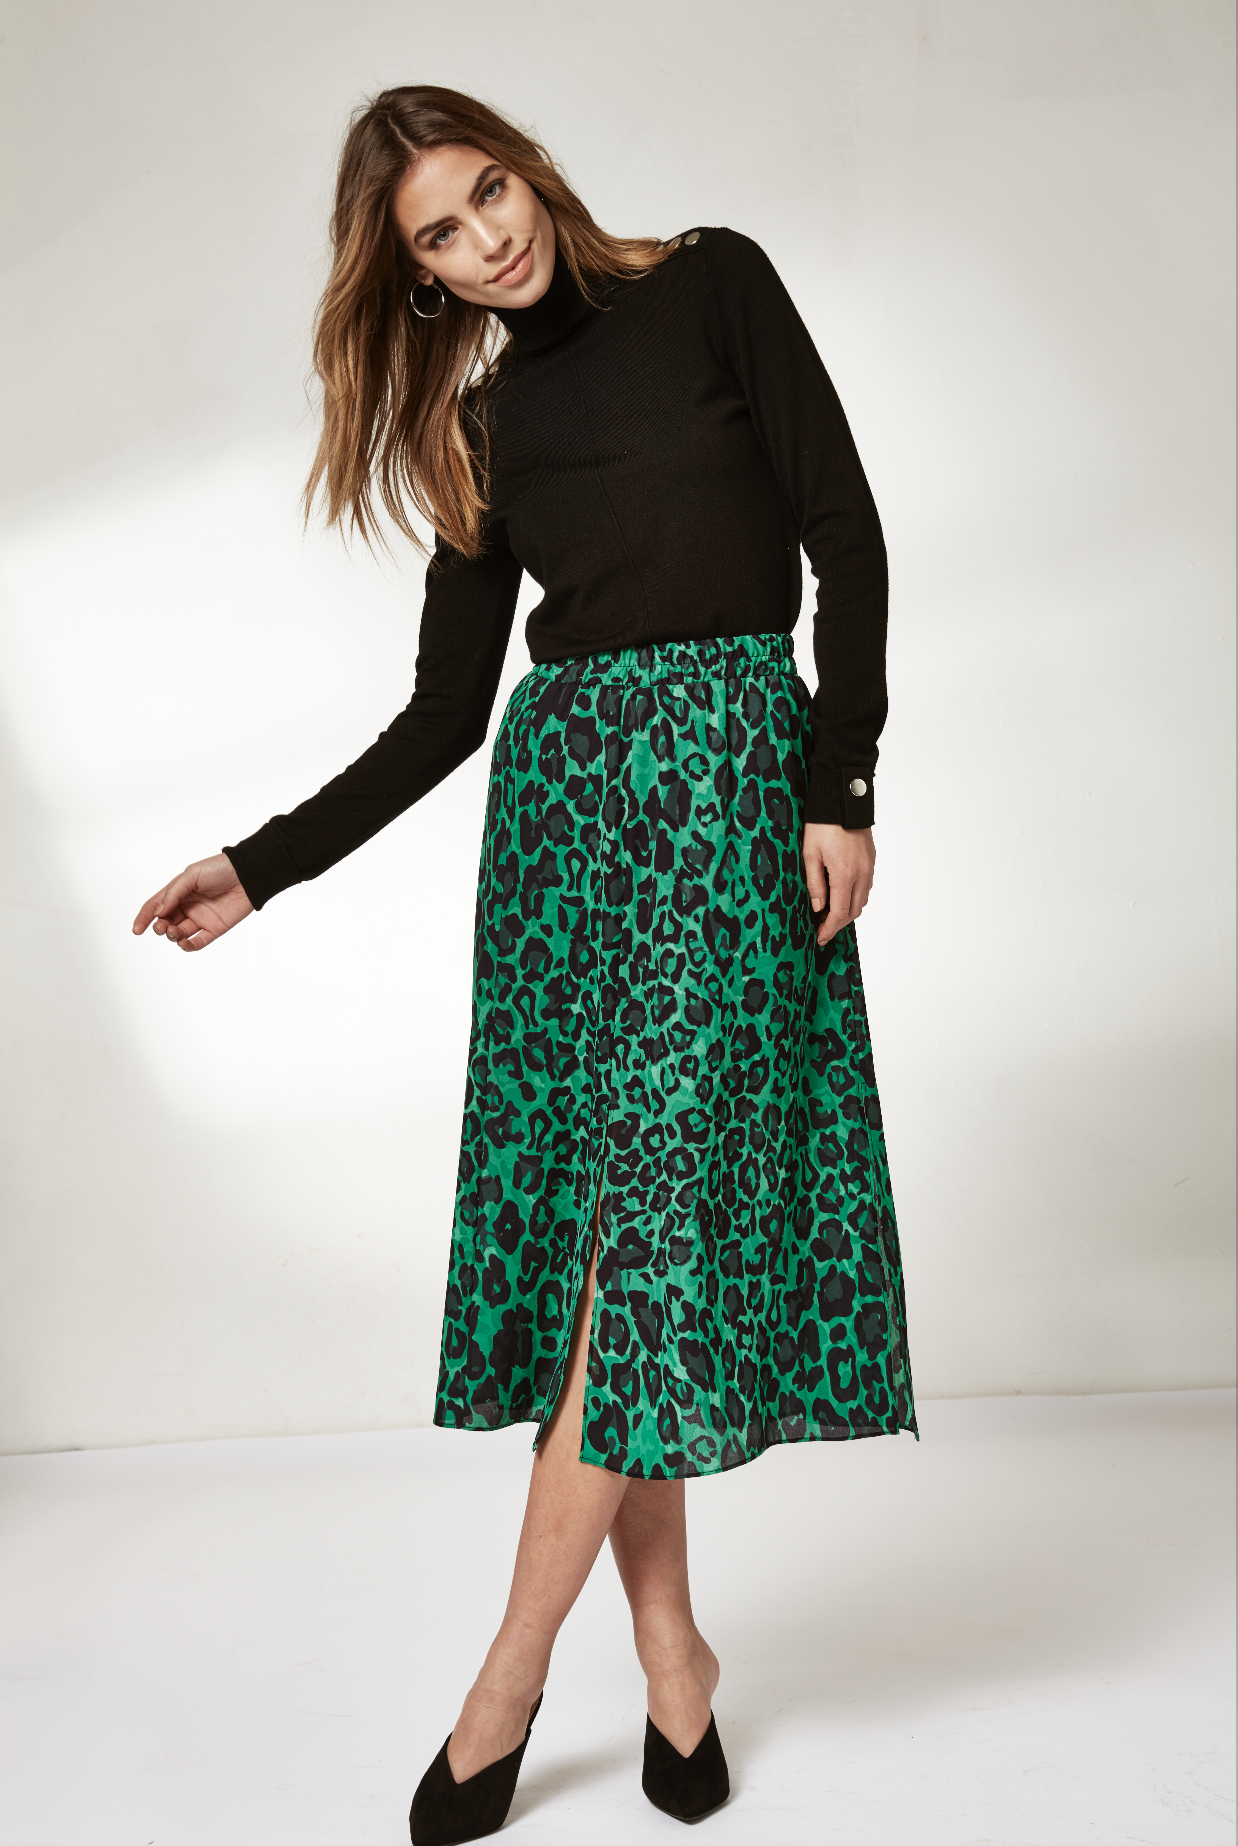 7b57da9e5e24 A new year of style | Refresh your wardrobe for 2019 with the latest animal  print midi skirts| Wallis | Click to shop #WallisFashion #WallisLoves ...